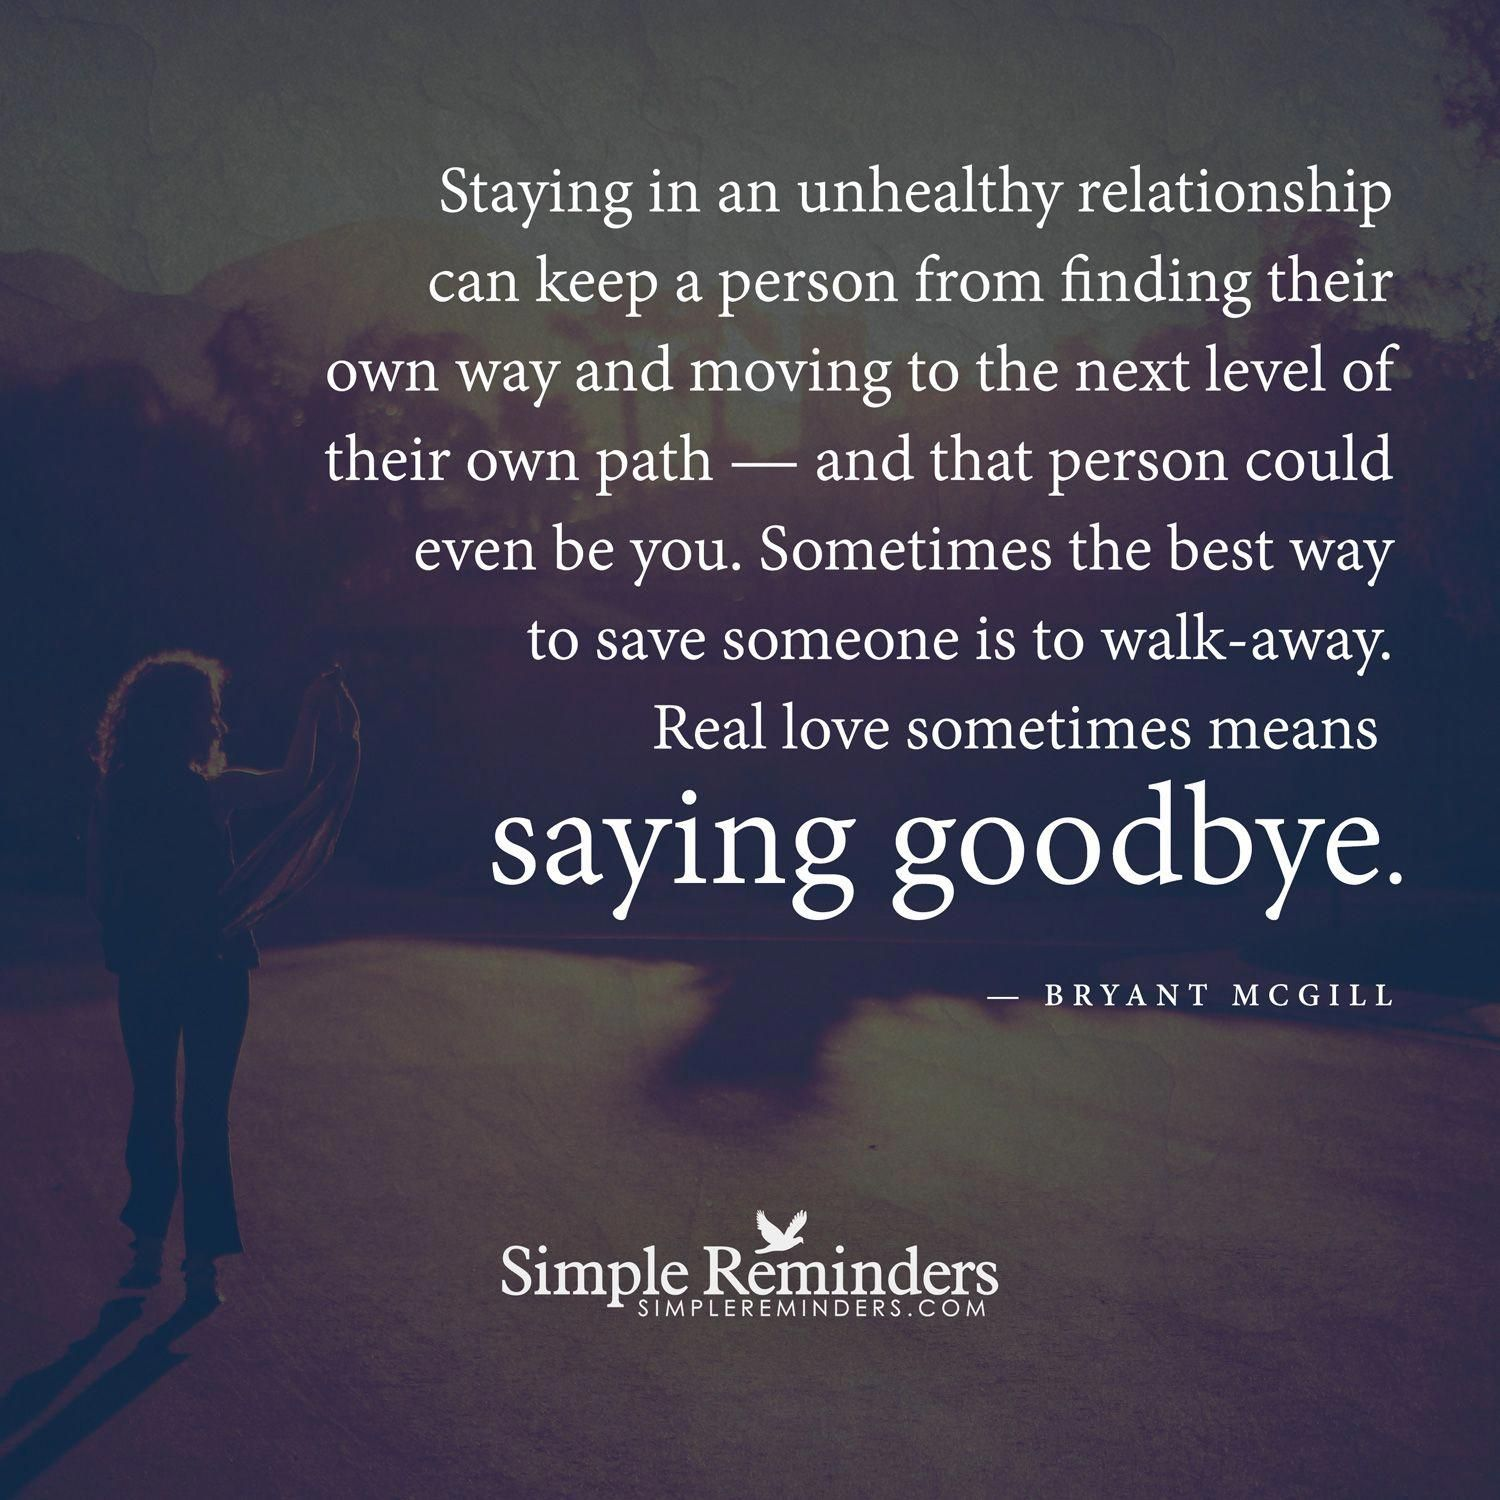 Staying In An Unhealthy Relationship Can Keep A Person From Finding Their Own Way And Moving To The Next Lev Unhealthy Relationships New Memes Real Life Quotes